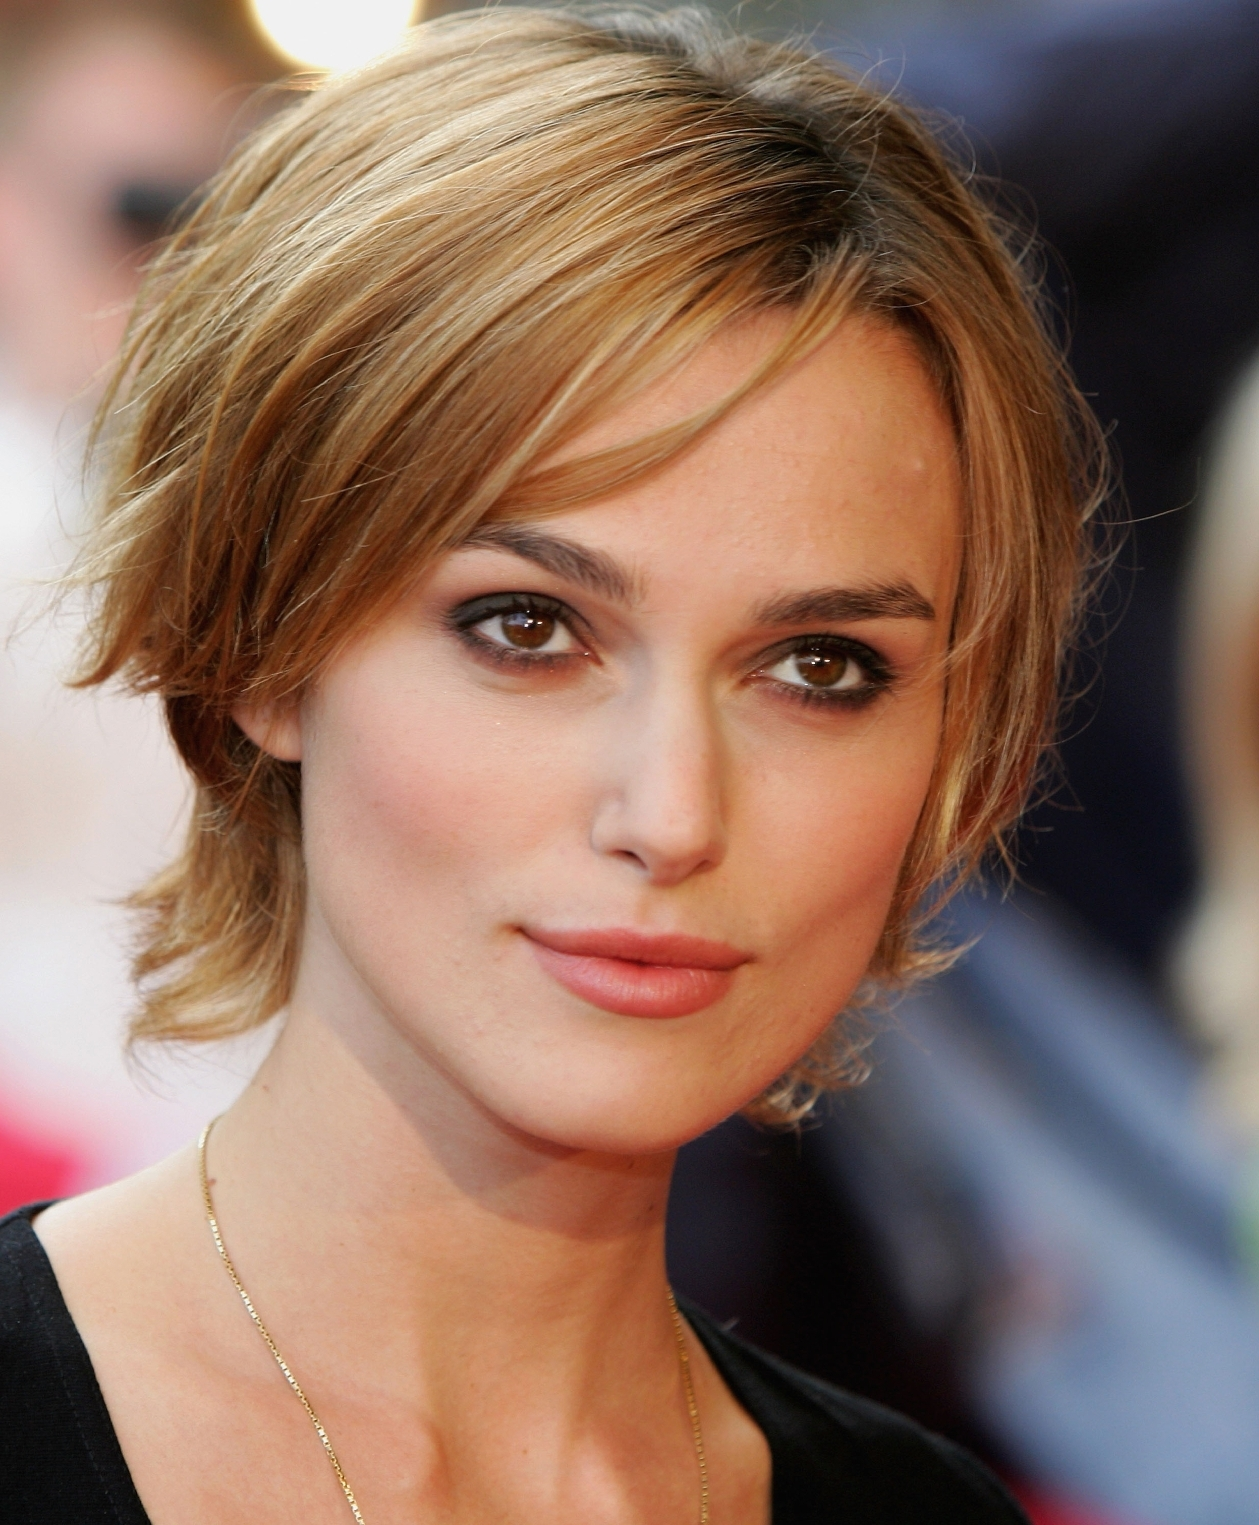 Best 15 Of Pixie Hairstyles For Diamond Shaped Face